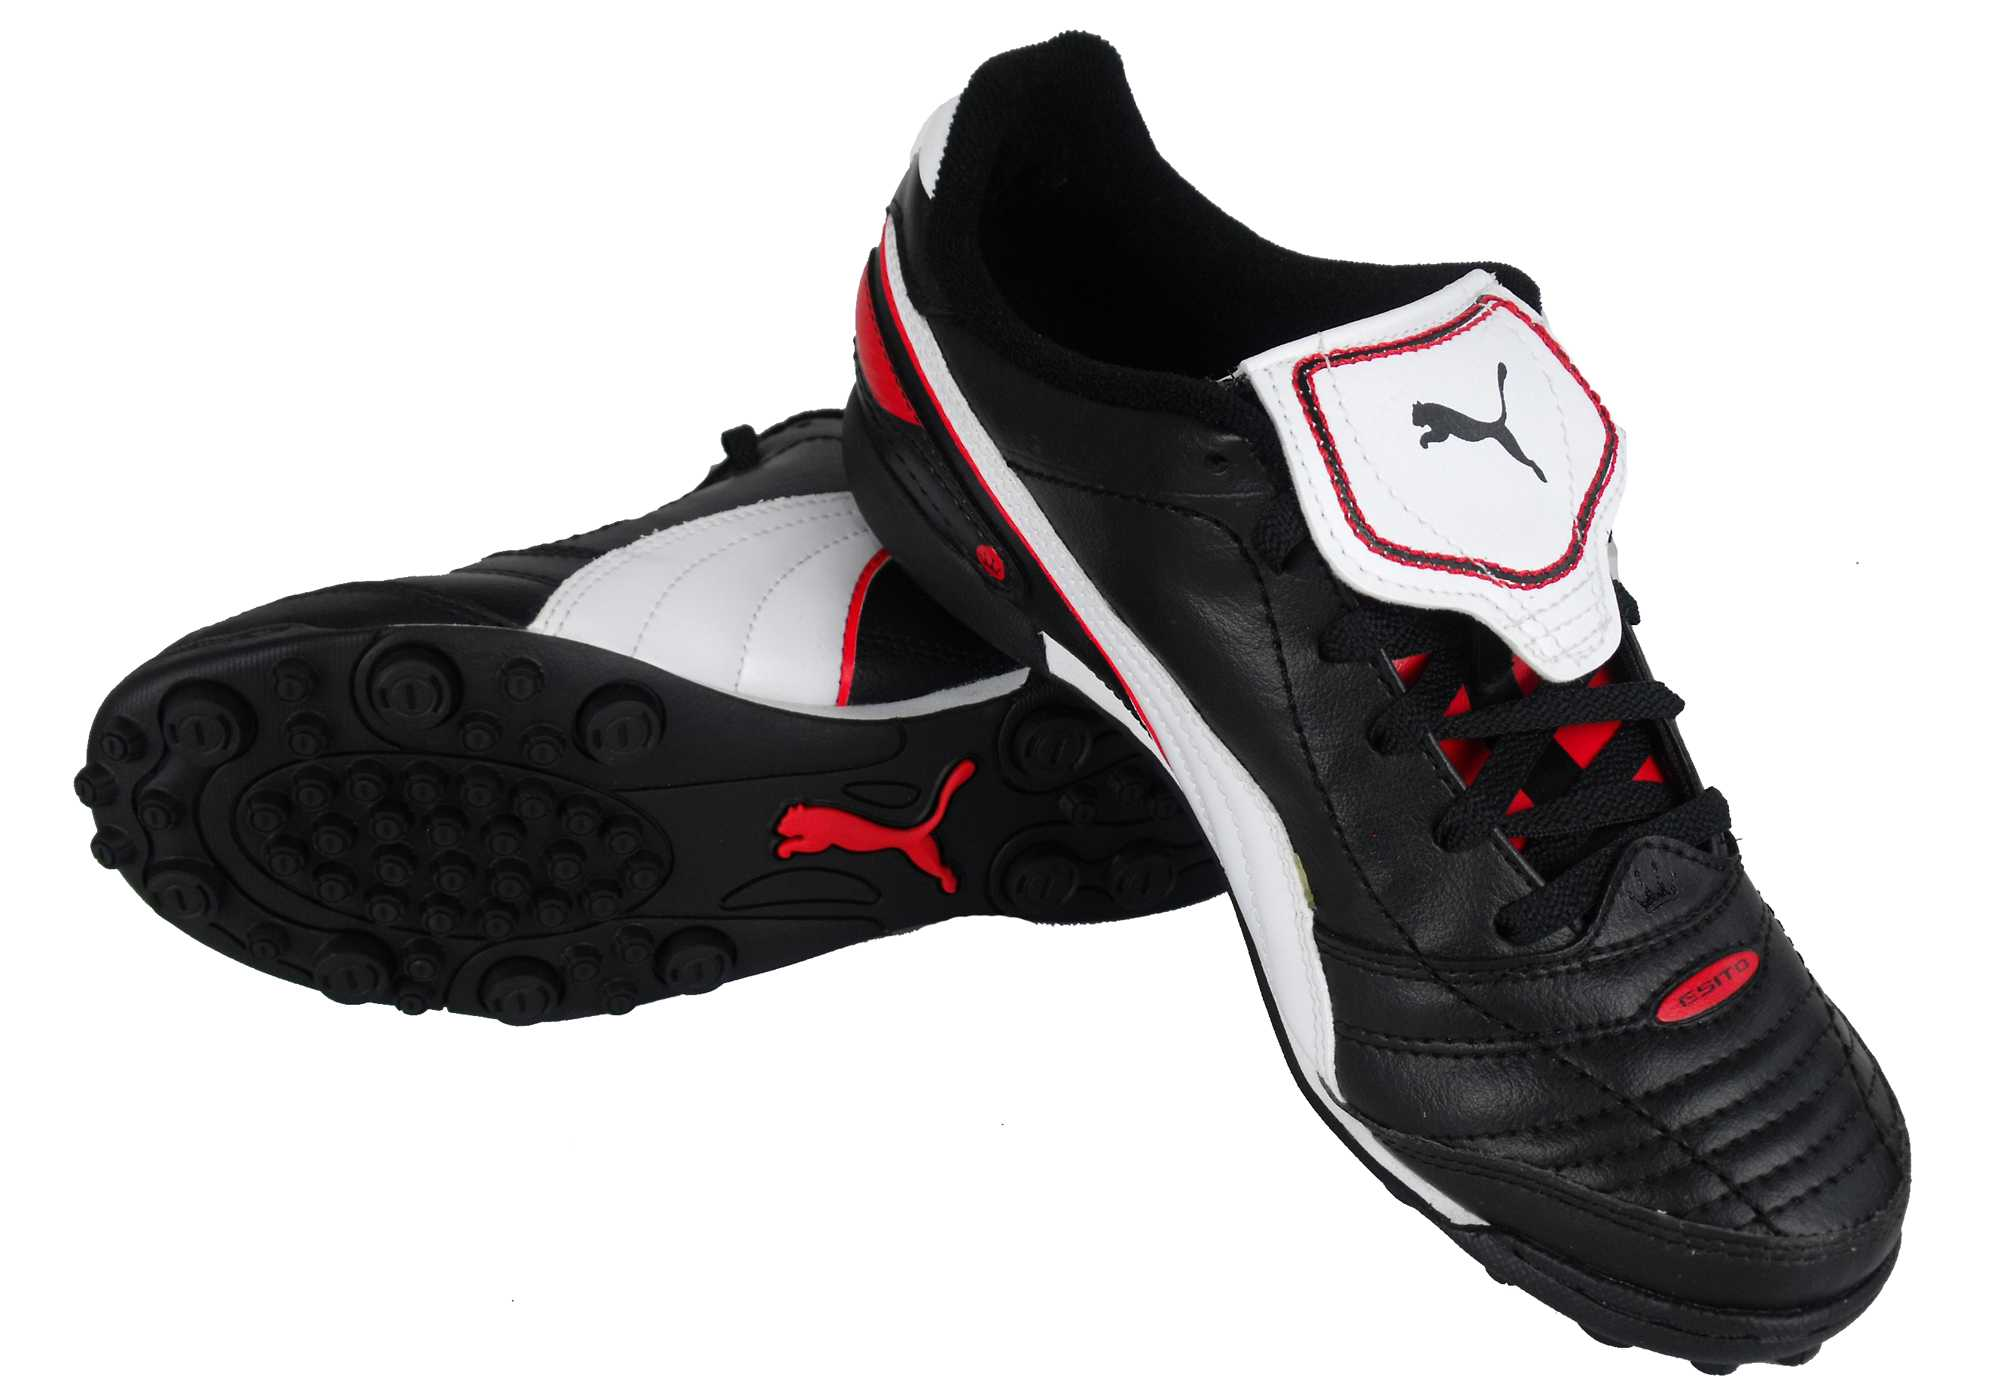 98a1183fe33816 Boys Puma Football Astro Turf TT Trainer Esito Finale Soccer Trainers  Astros New